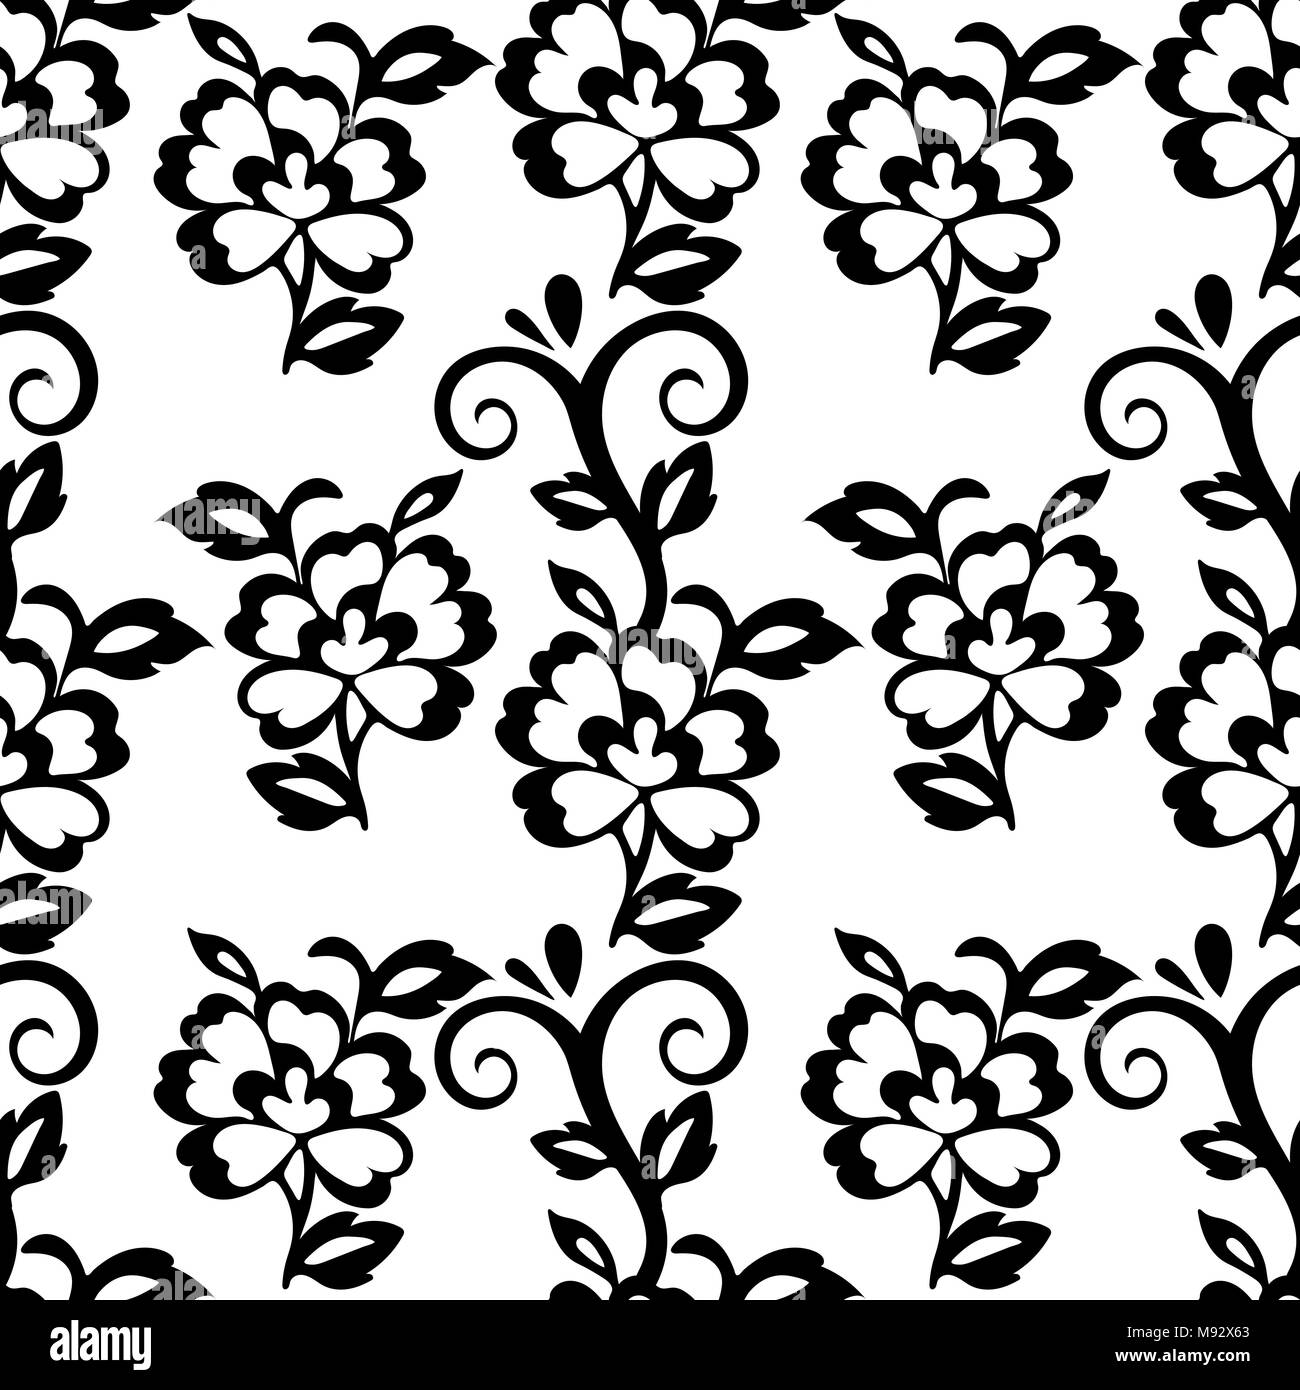 Abstract Floral Seamless Pattern Vector Background Black Floral